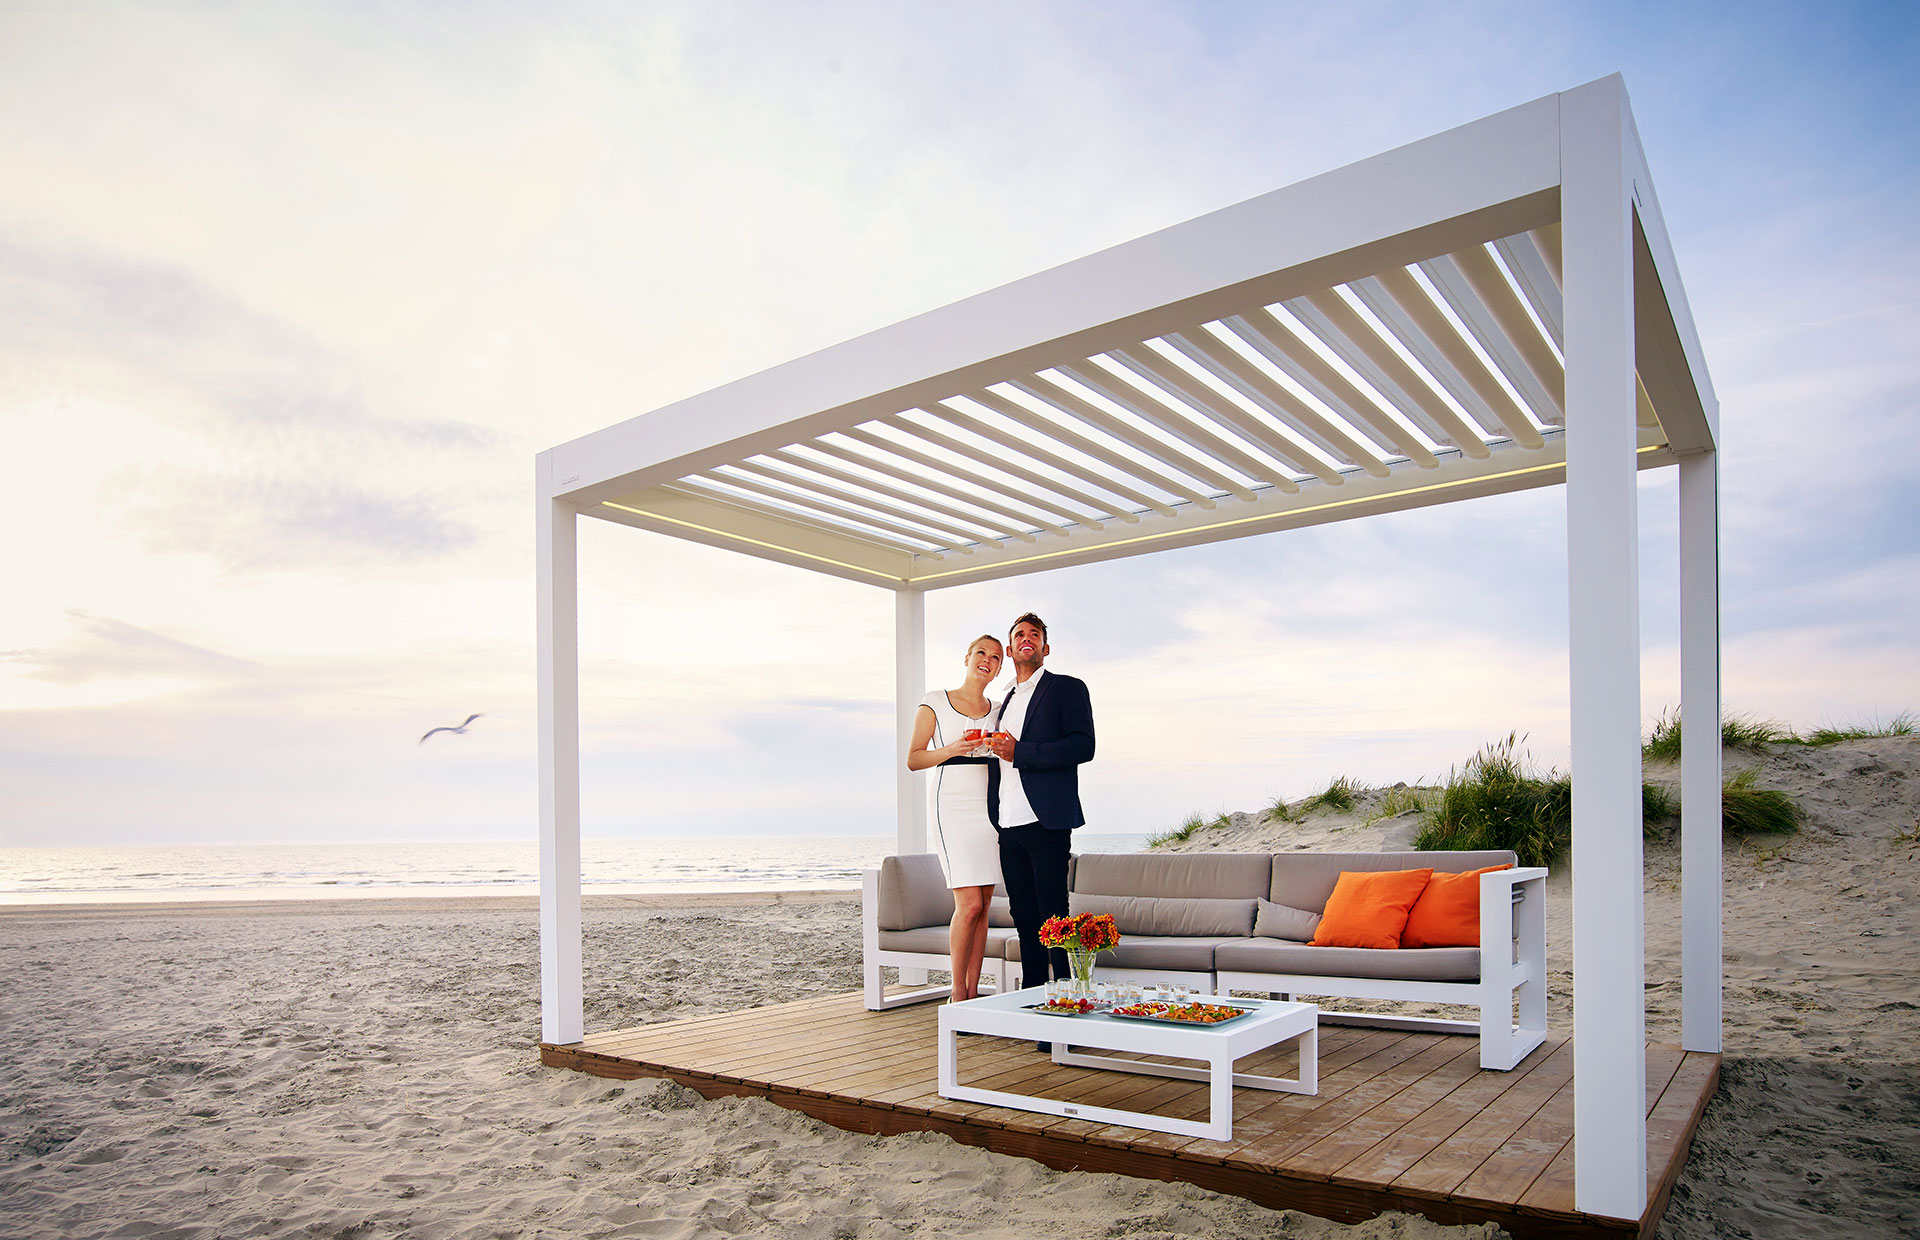 Retractable Roof Amp Awnings Systems Eurola Australia